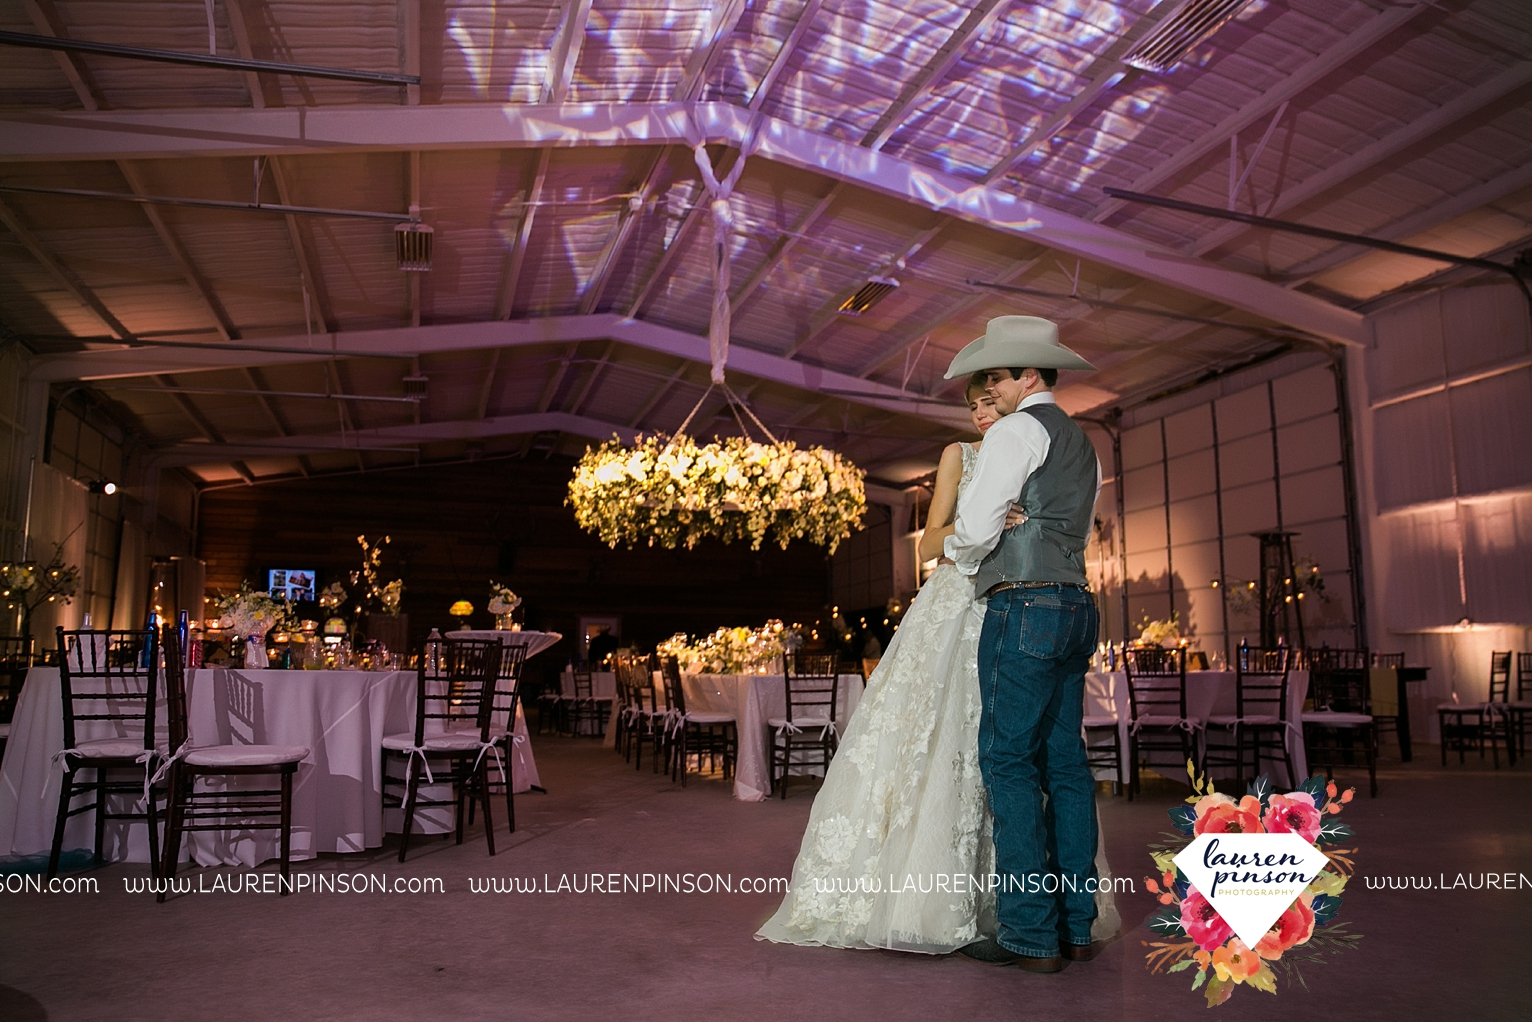 wichita-falls-texas-wedding-photographer-bowie-nocona-henrietta-country-barn-wedding_2217.jpg